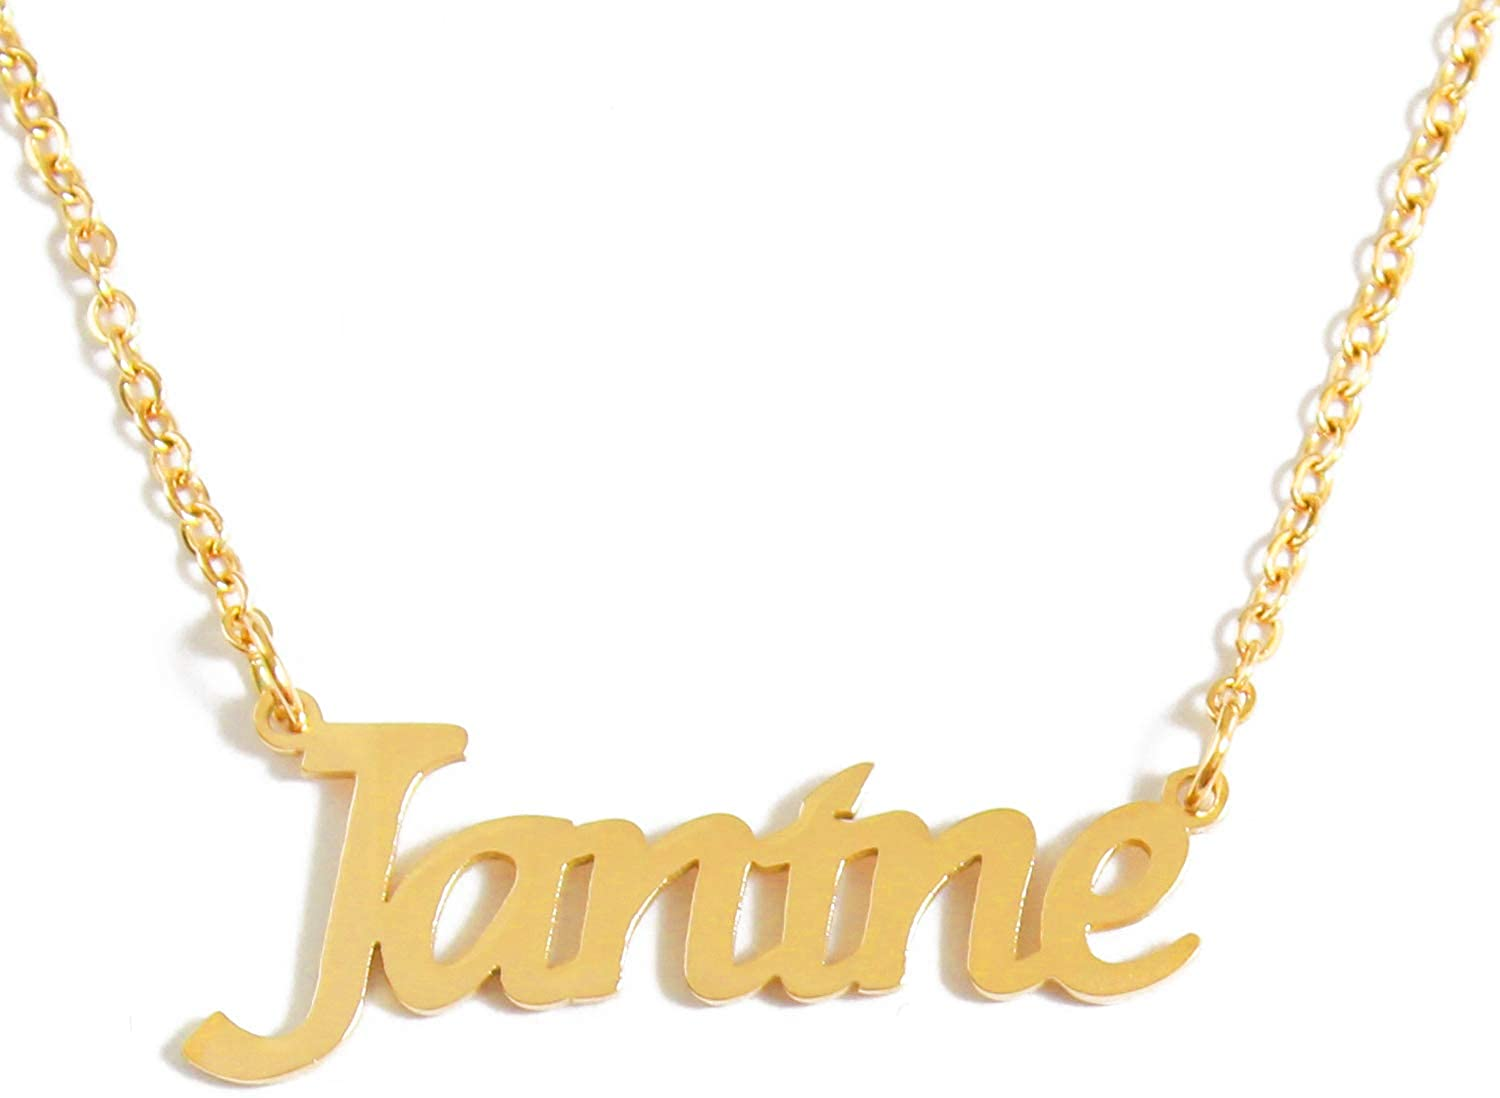 Kigu Janine Custom Name Necklace Personalized - 18ct Gold Plated